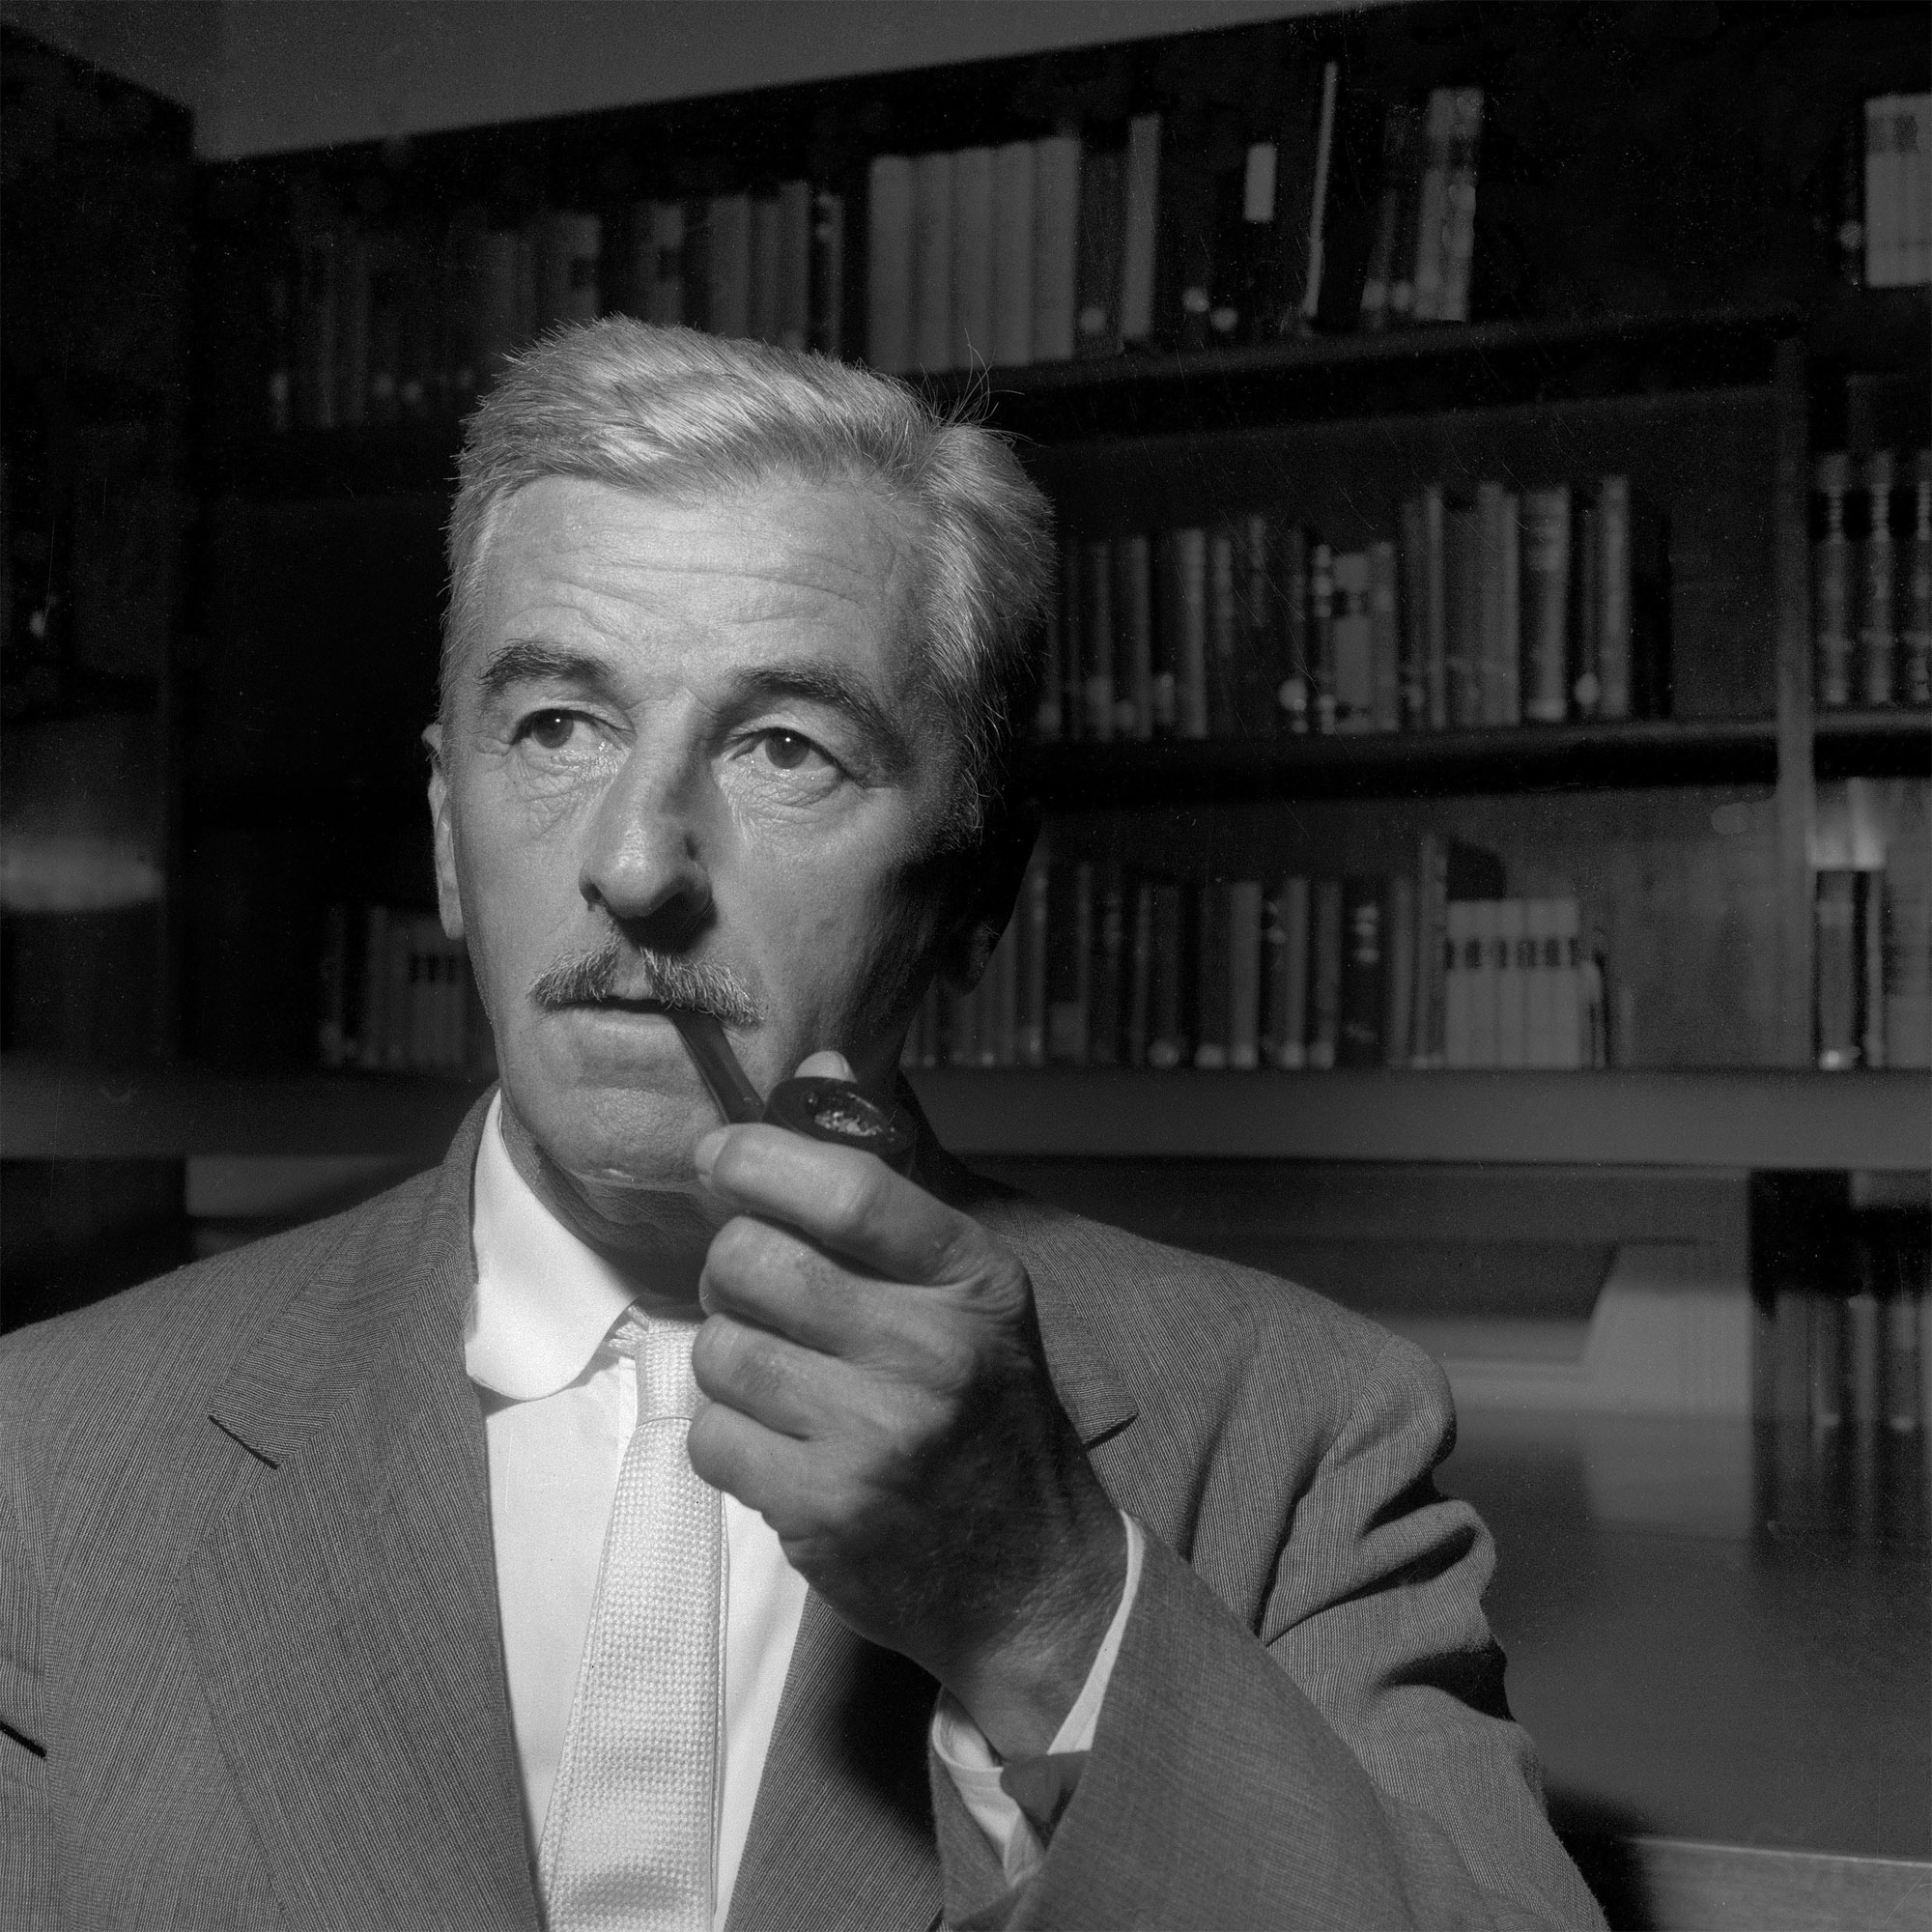 Portrait de William Faulkner en 1955.